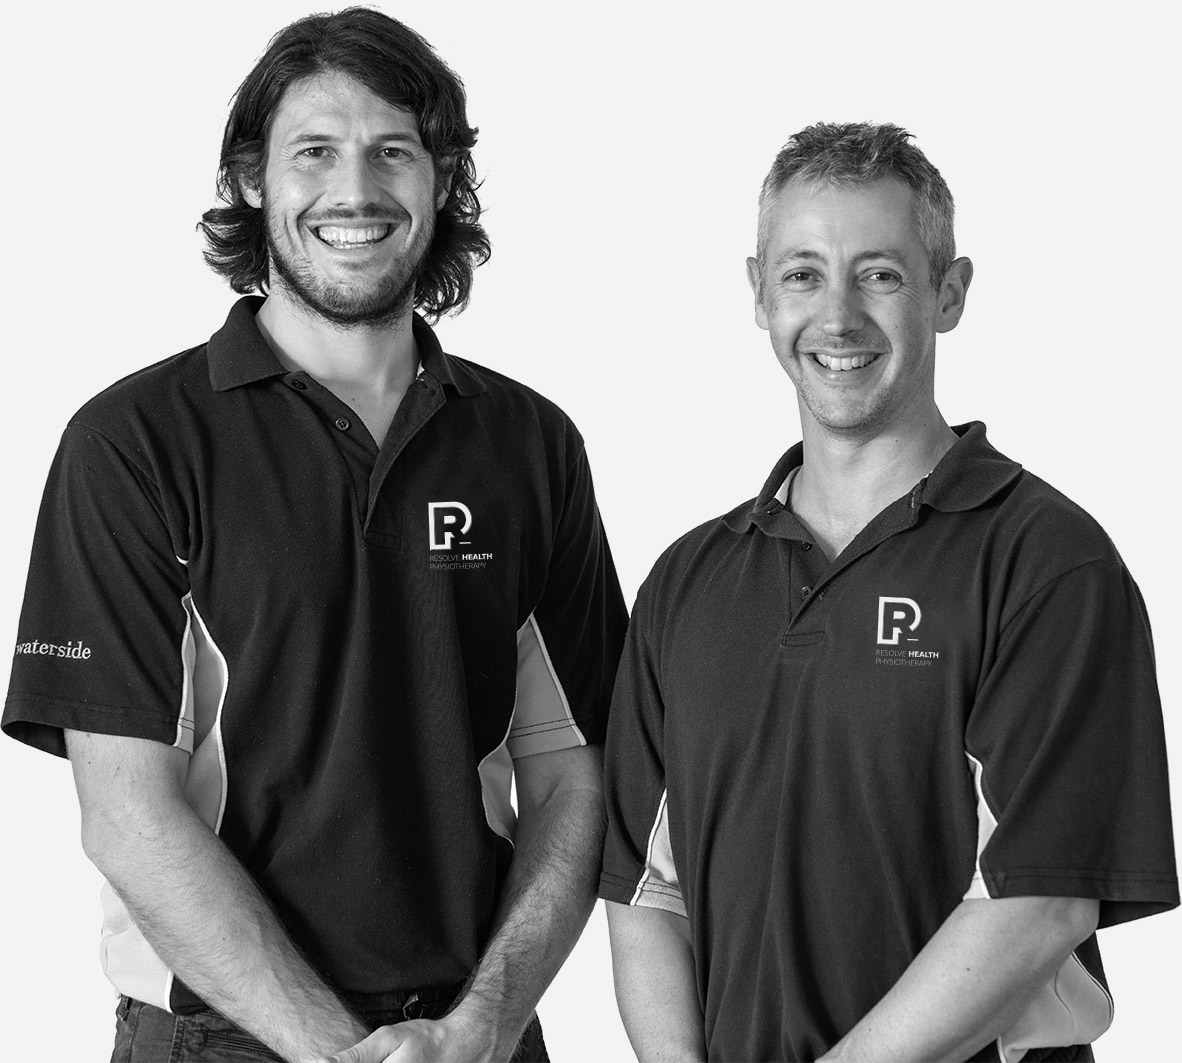 Gavin Kelly and Jason Seaton of Resolve Health Physio